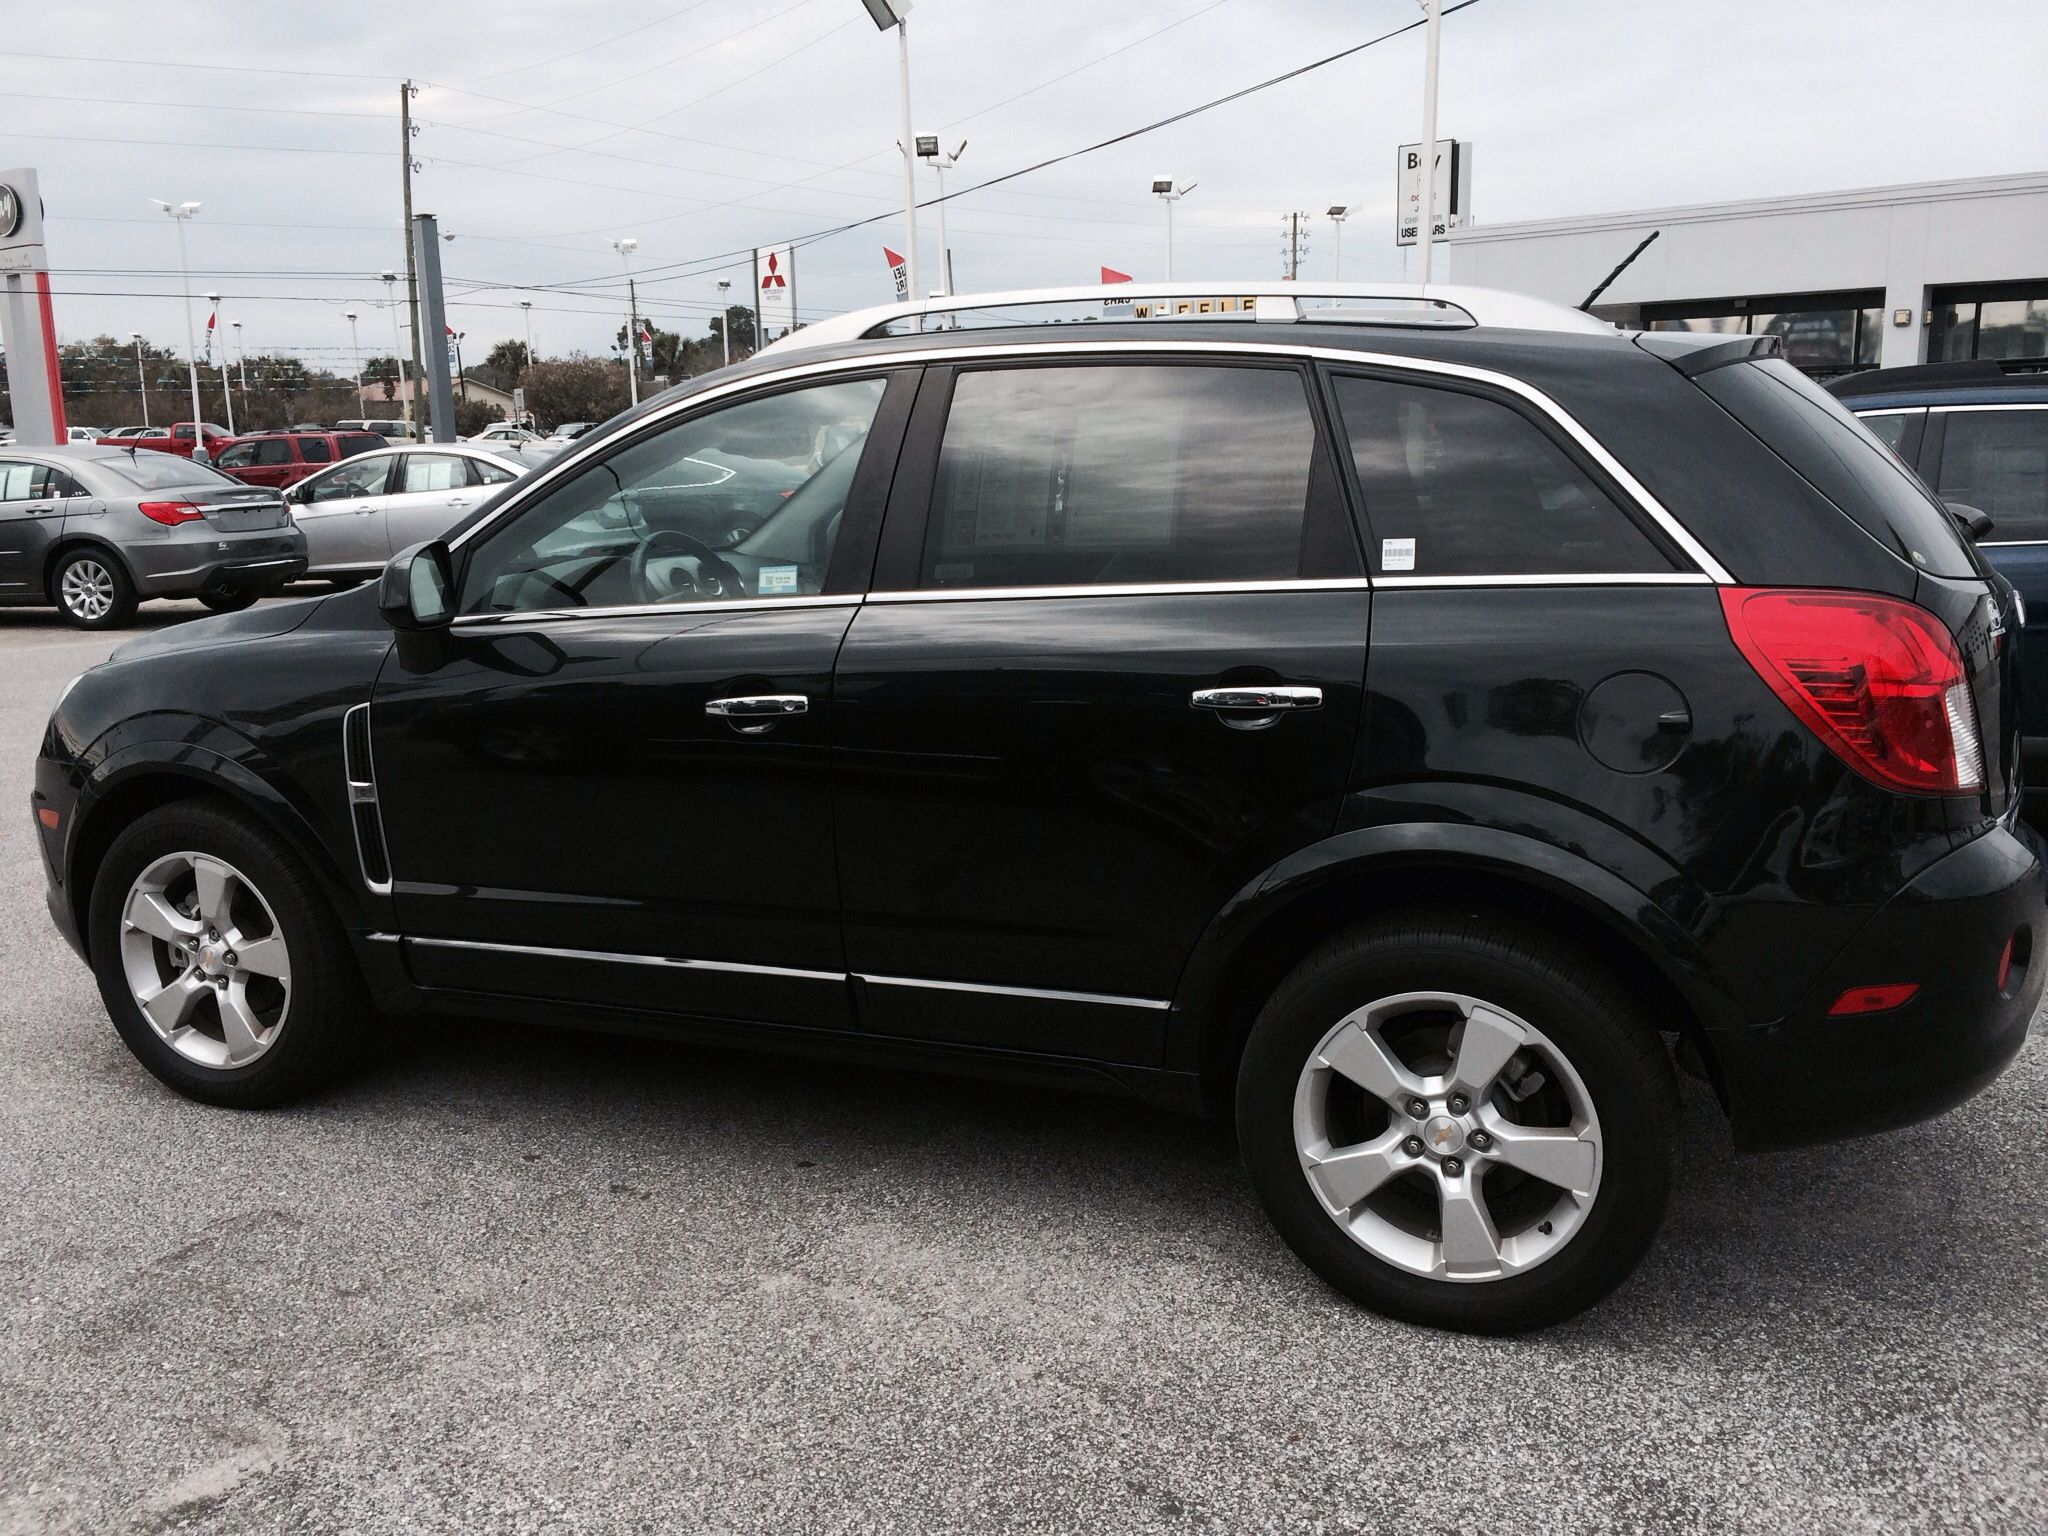 2013 chevy captiva sport ltz one owner less than 24k. Black Bedroom Furniture Sets. Home Design Ideas